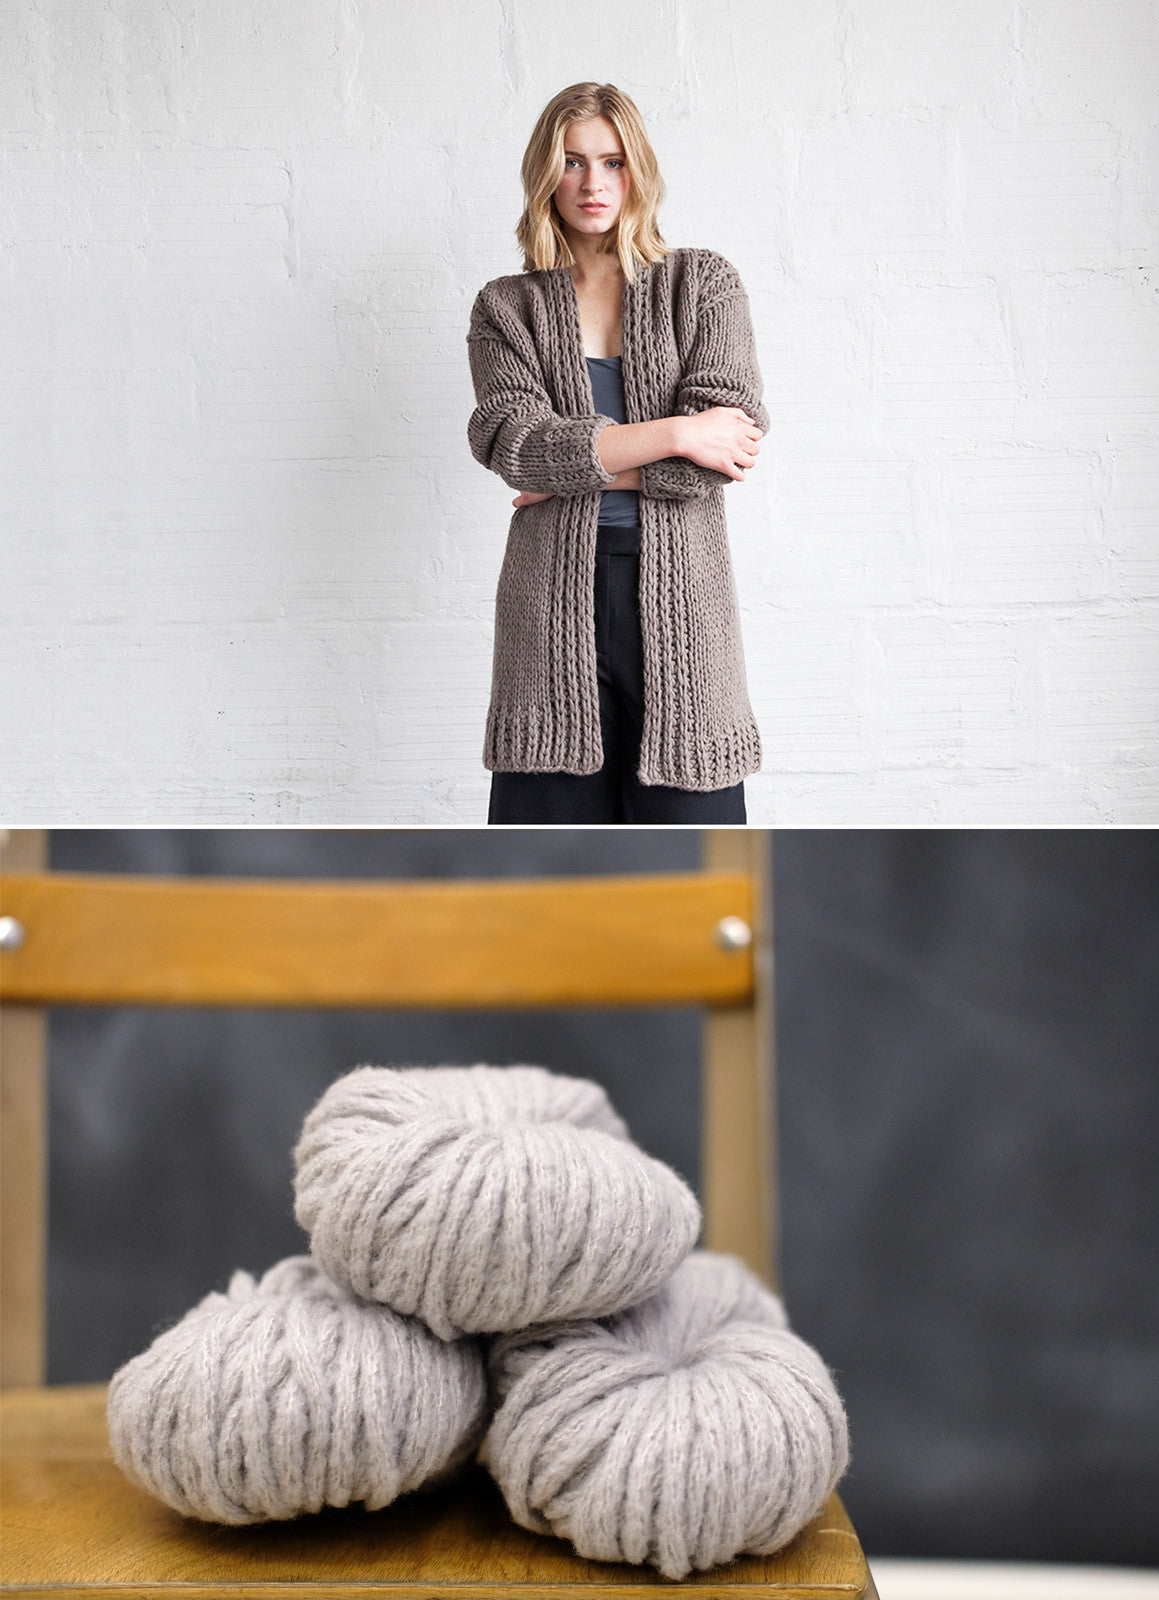 Kile Sweater in Woolfolk Hygge